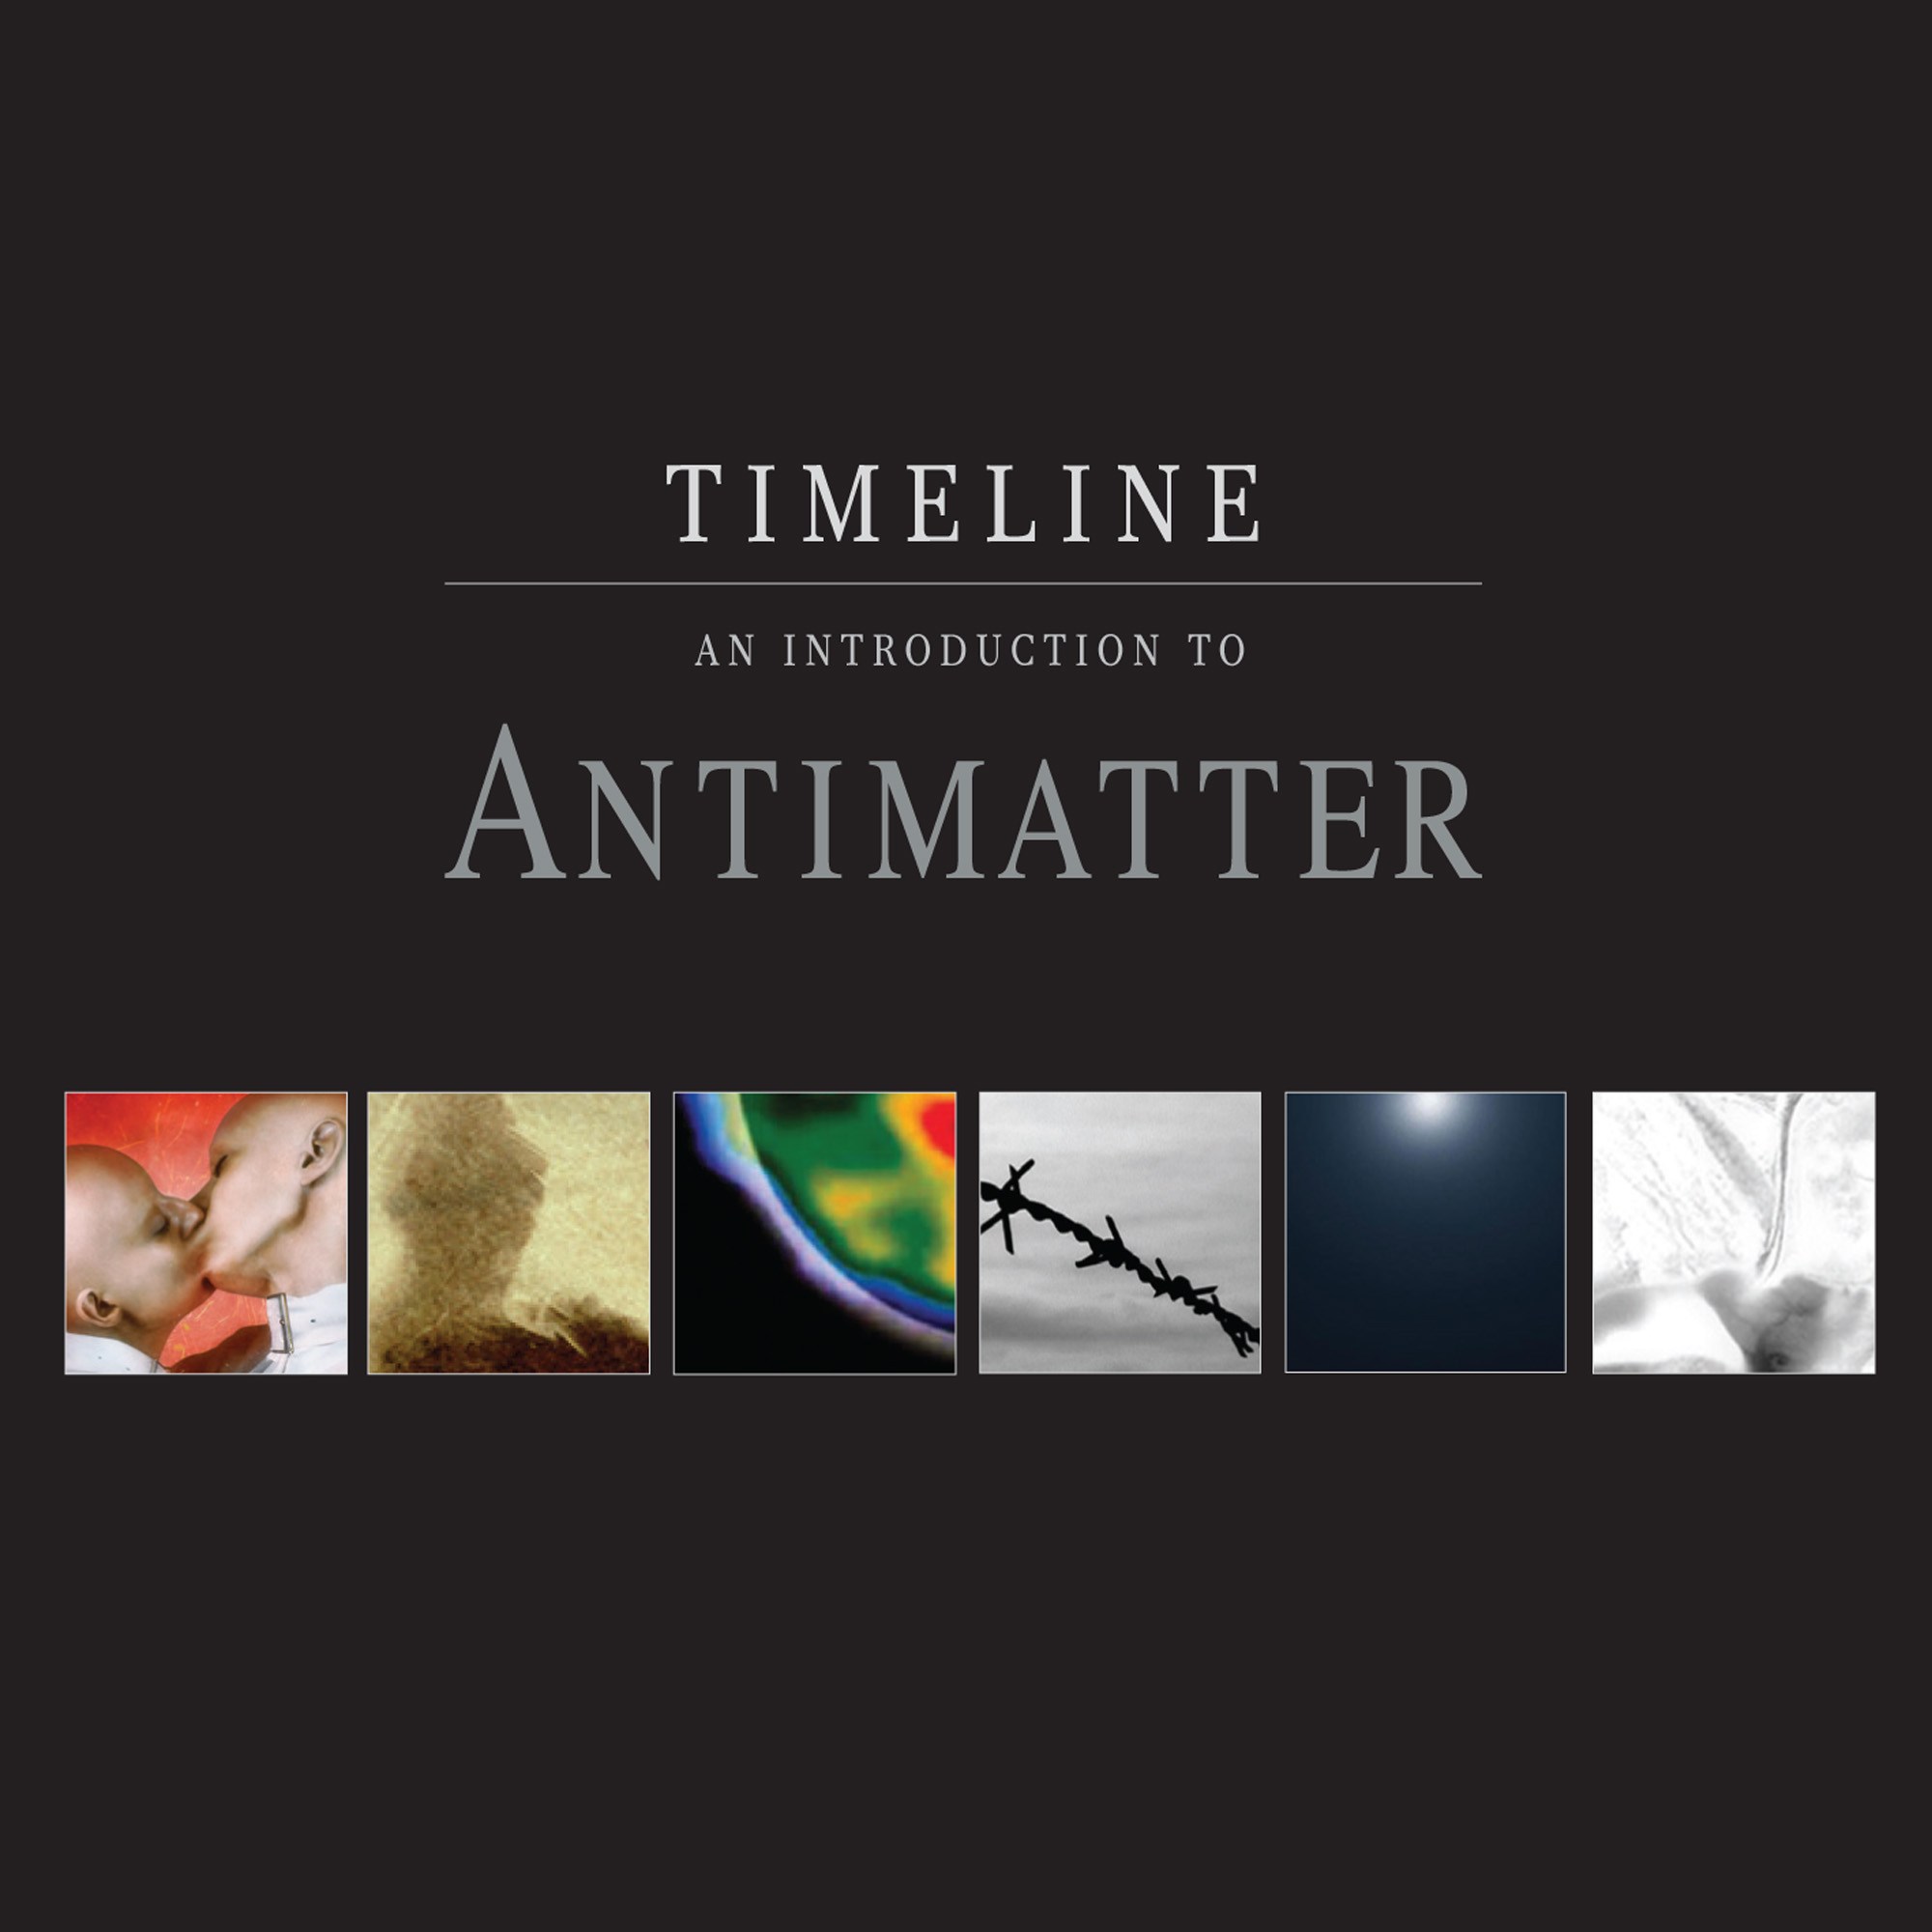 an introduction to anti matter Antimatter click here to go to the physics virtual bookshelf click here to go to the  upscale home page introduction: the last level of metaphor in the alice.